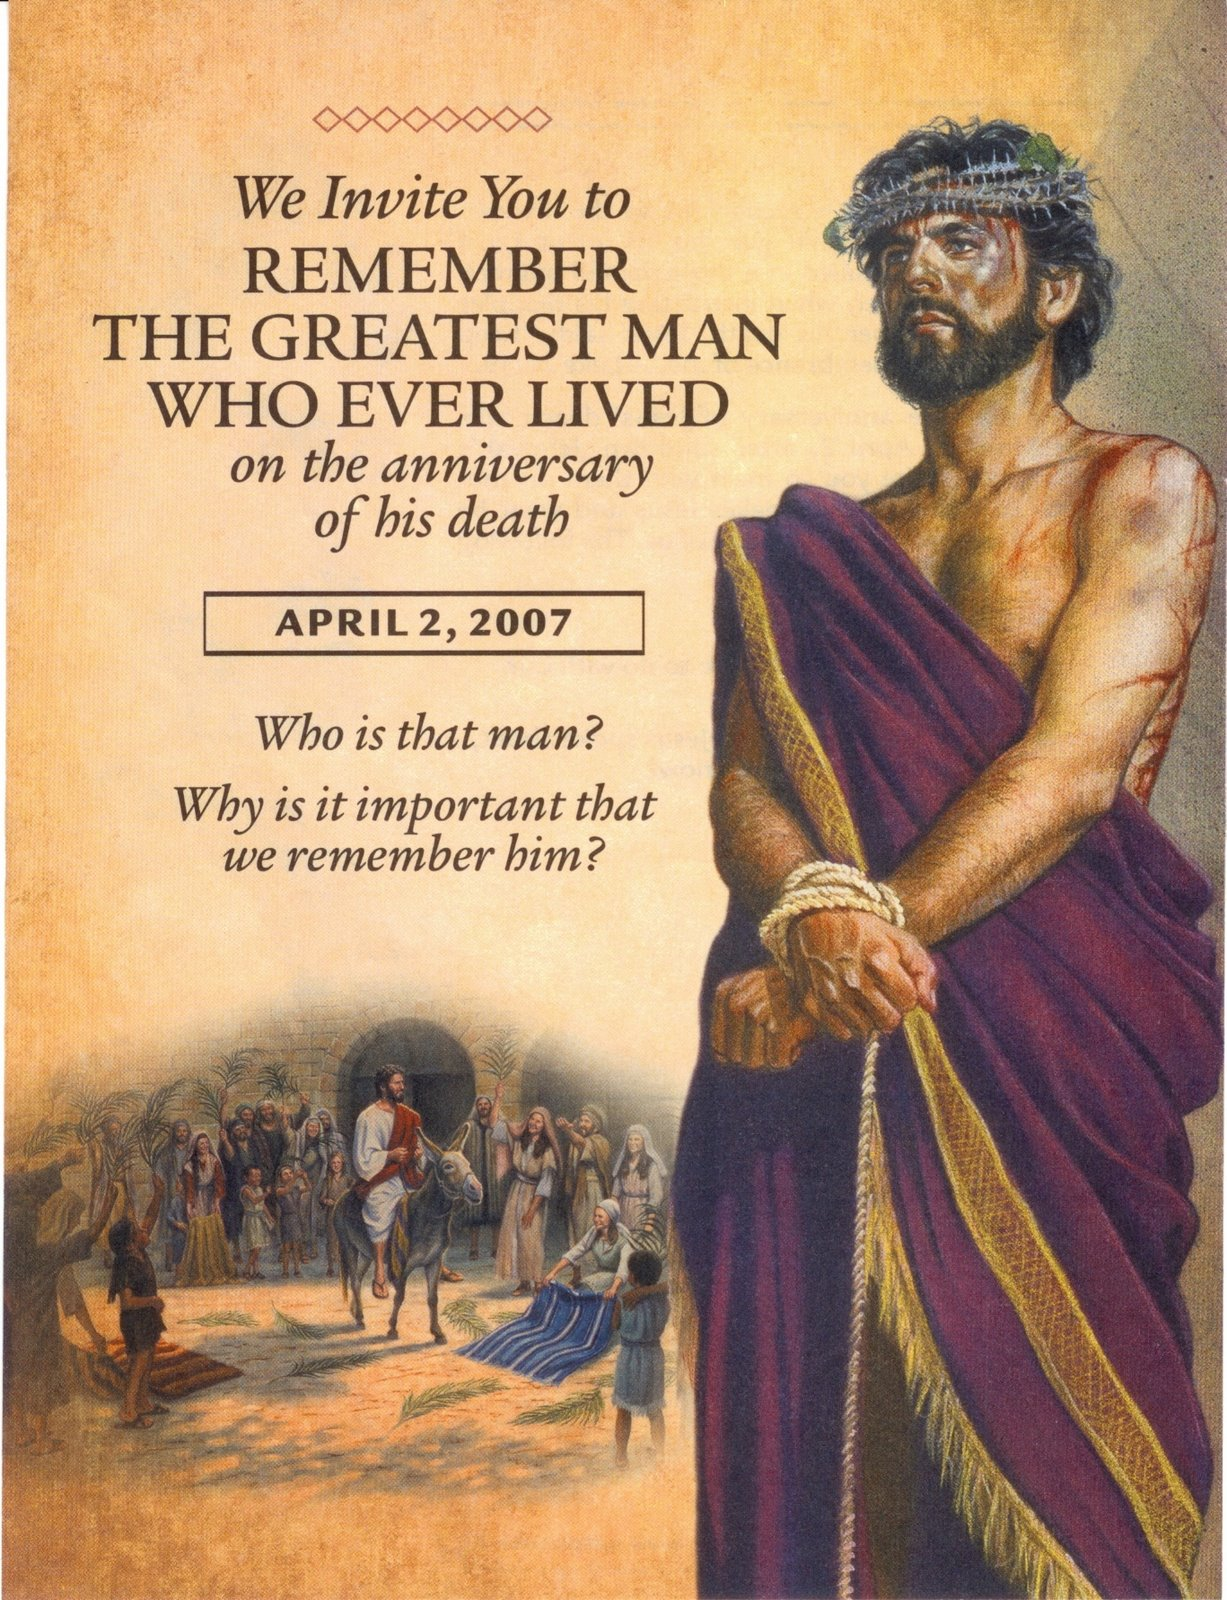 download Jehovah witnesses images Flyer For 2007 Memorial 1227x1600